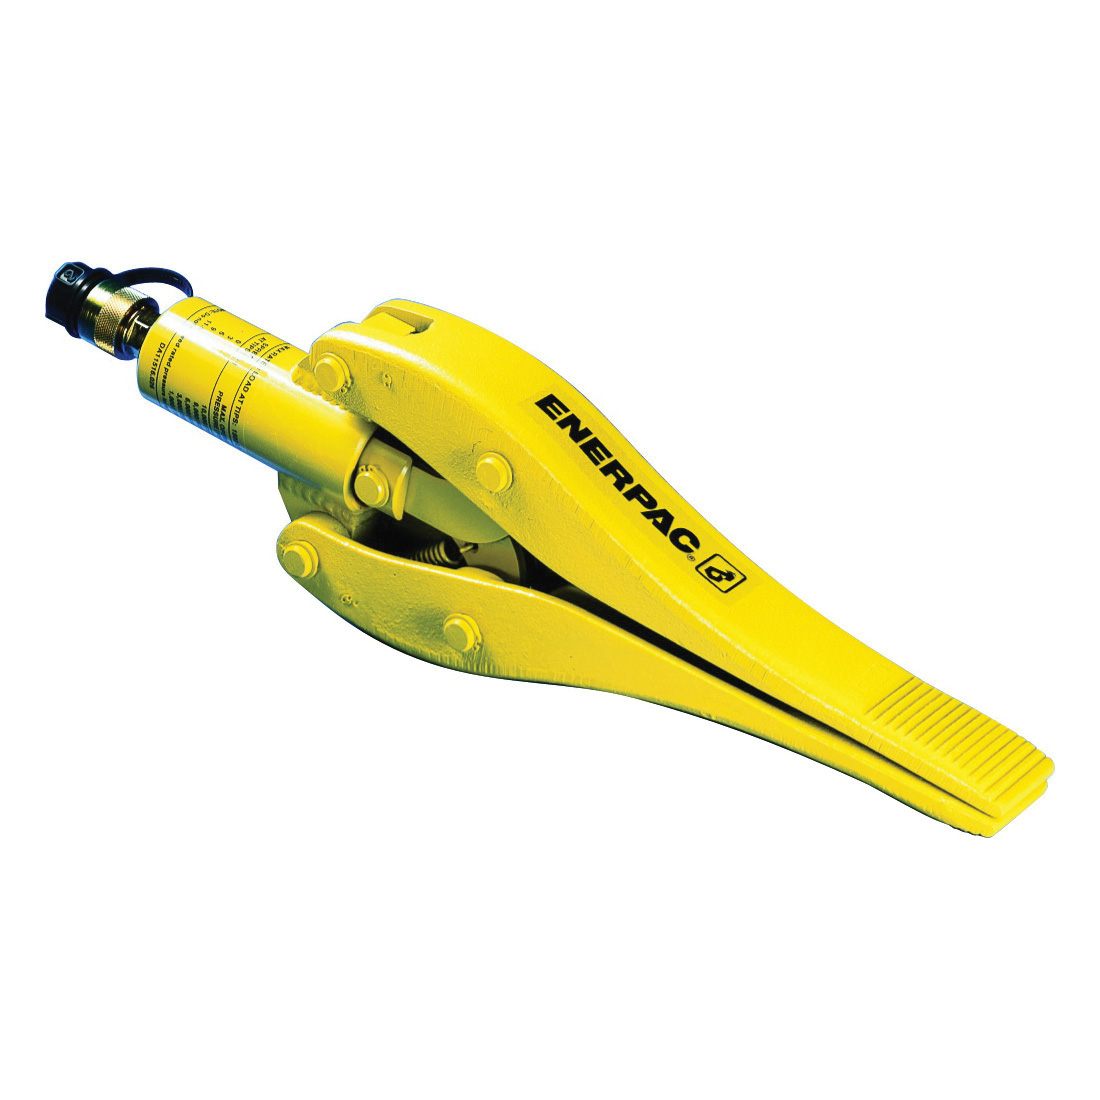 Enerpac® WR-15 WR Series Single Acting Spring Return Hydraulic Wedge and Spread Cylinder, 549 mm L x 157 mm H, 0.75 ton x 292 mm Spreading, Steel Jaw